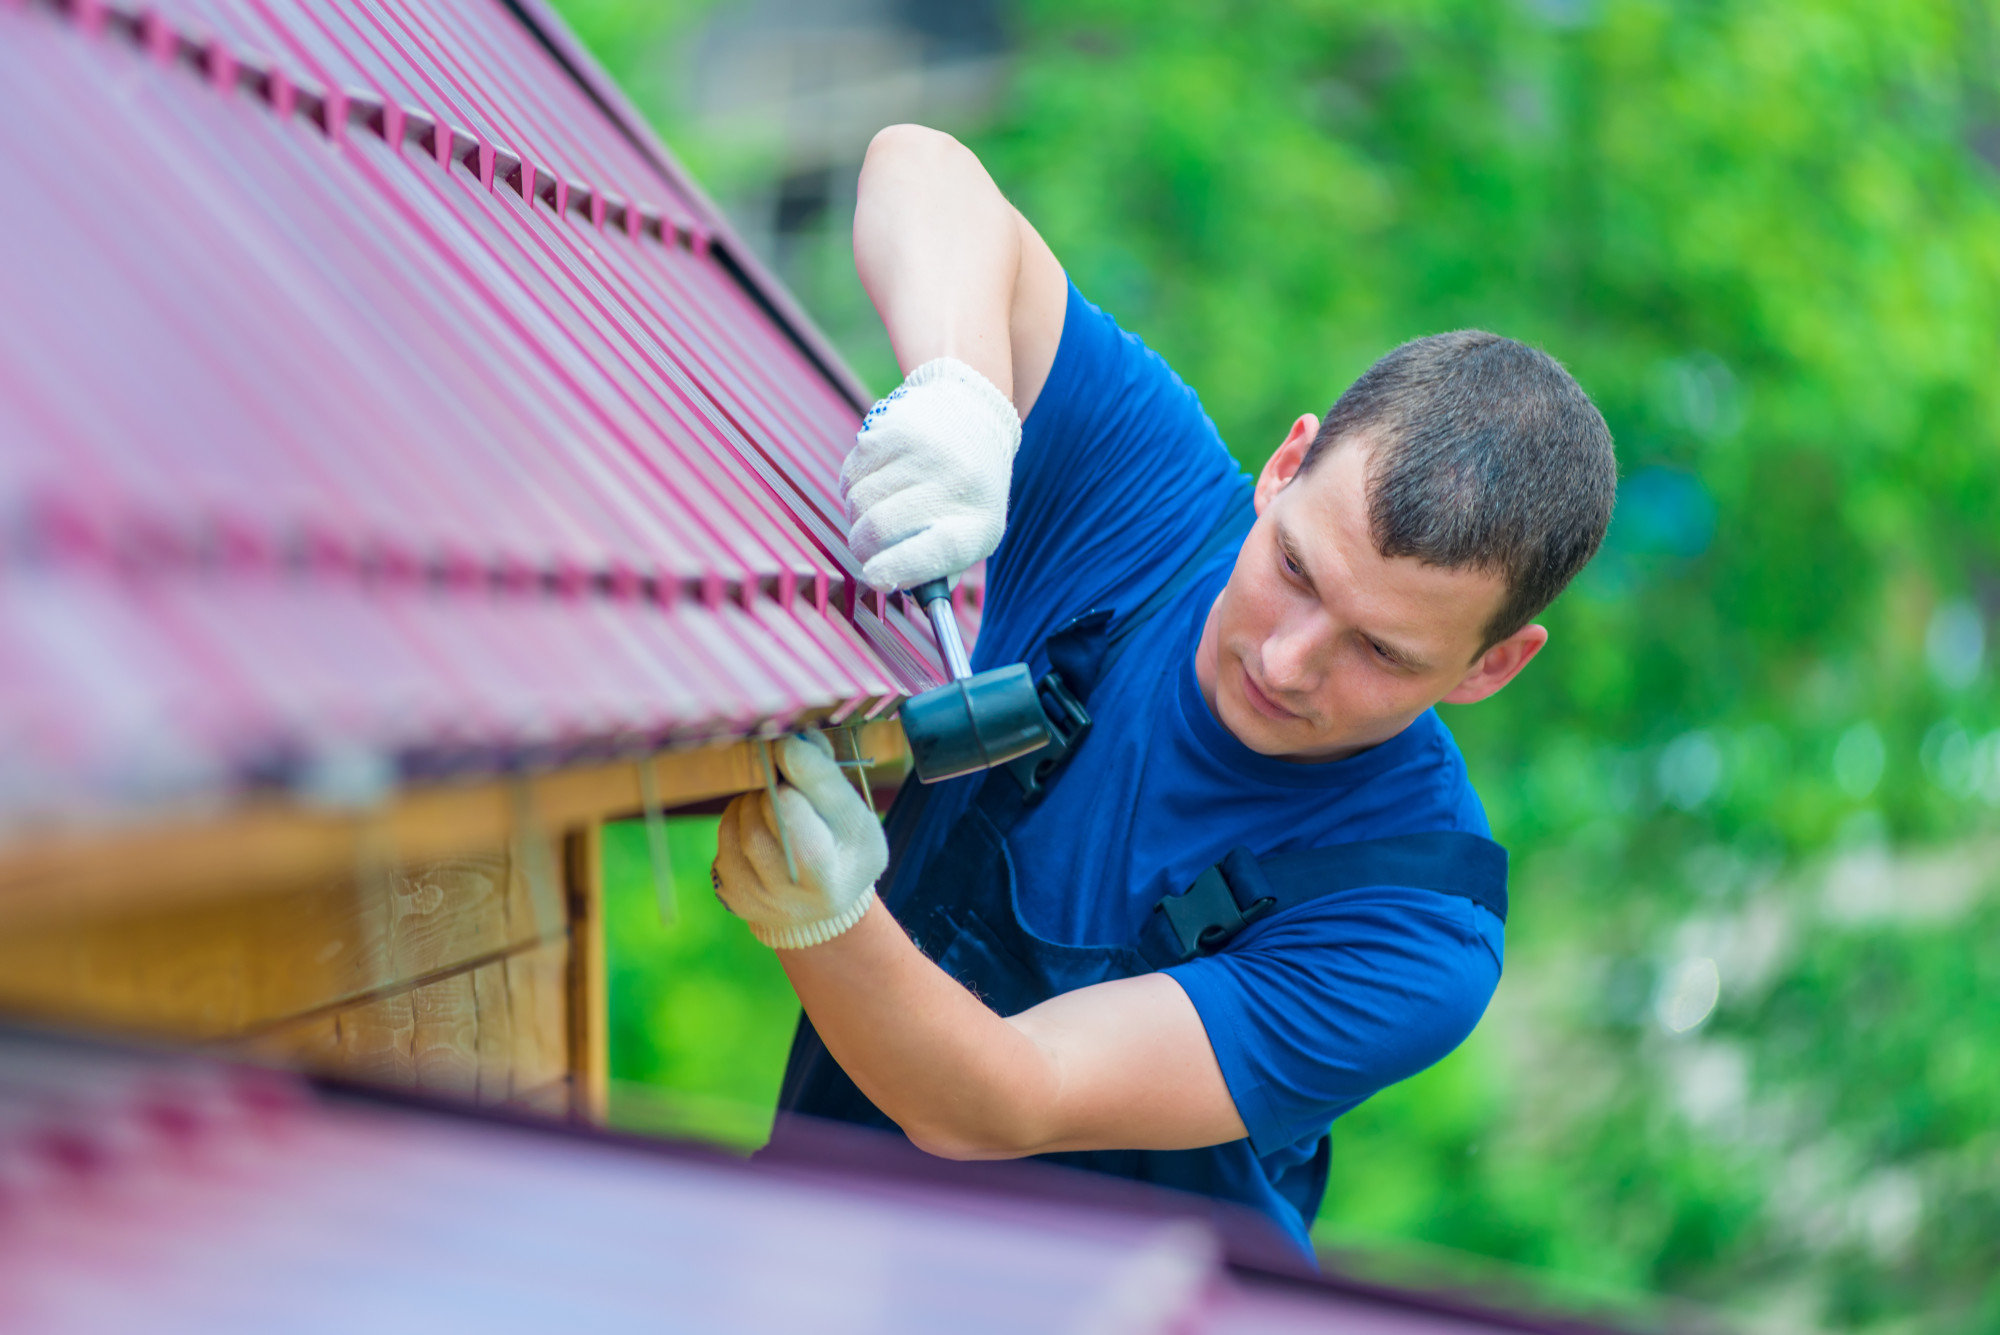 Roof Inspections - All You Need to Know